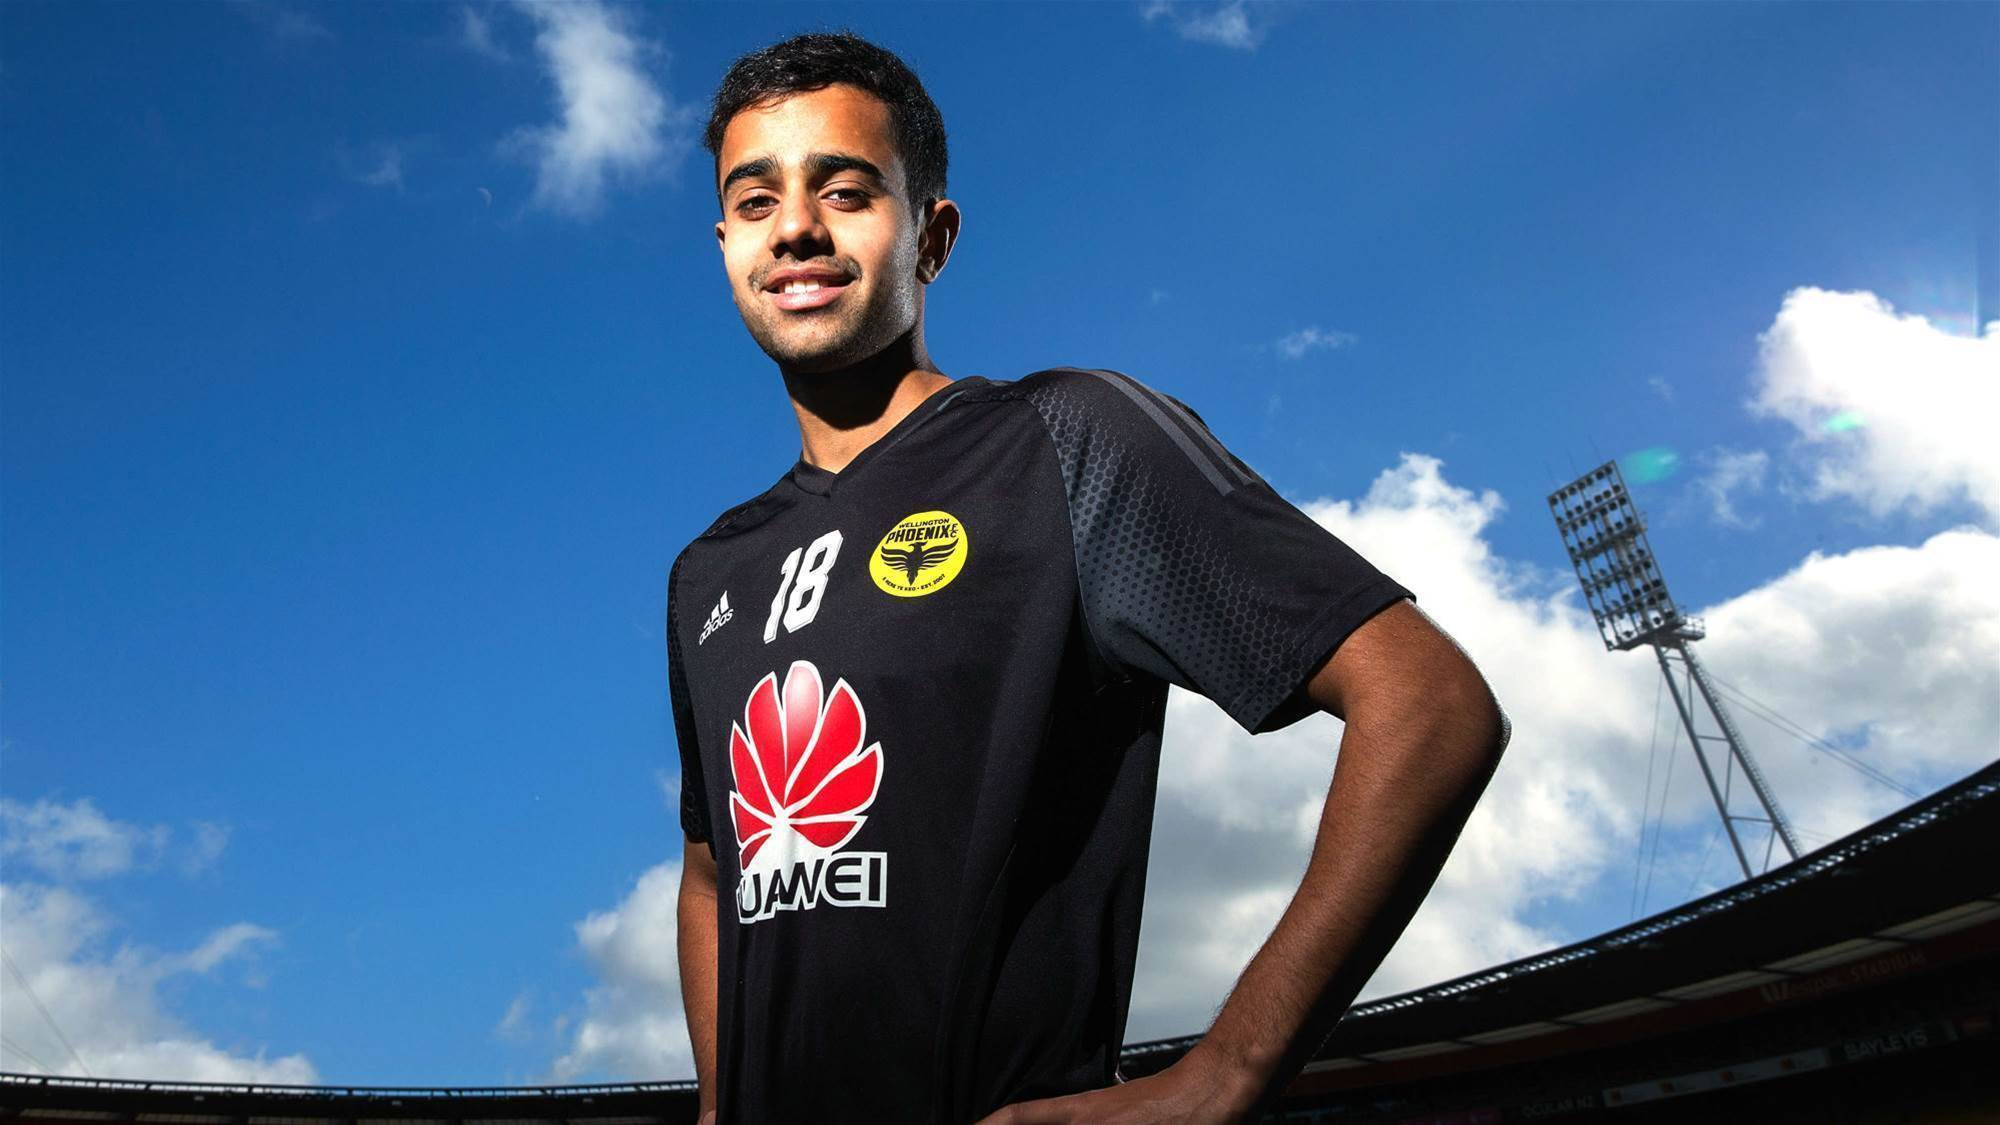 A-League teen sensation excites Indian fans